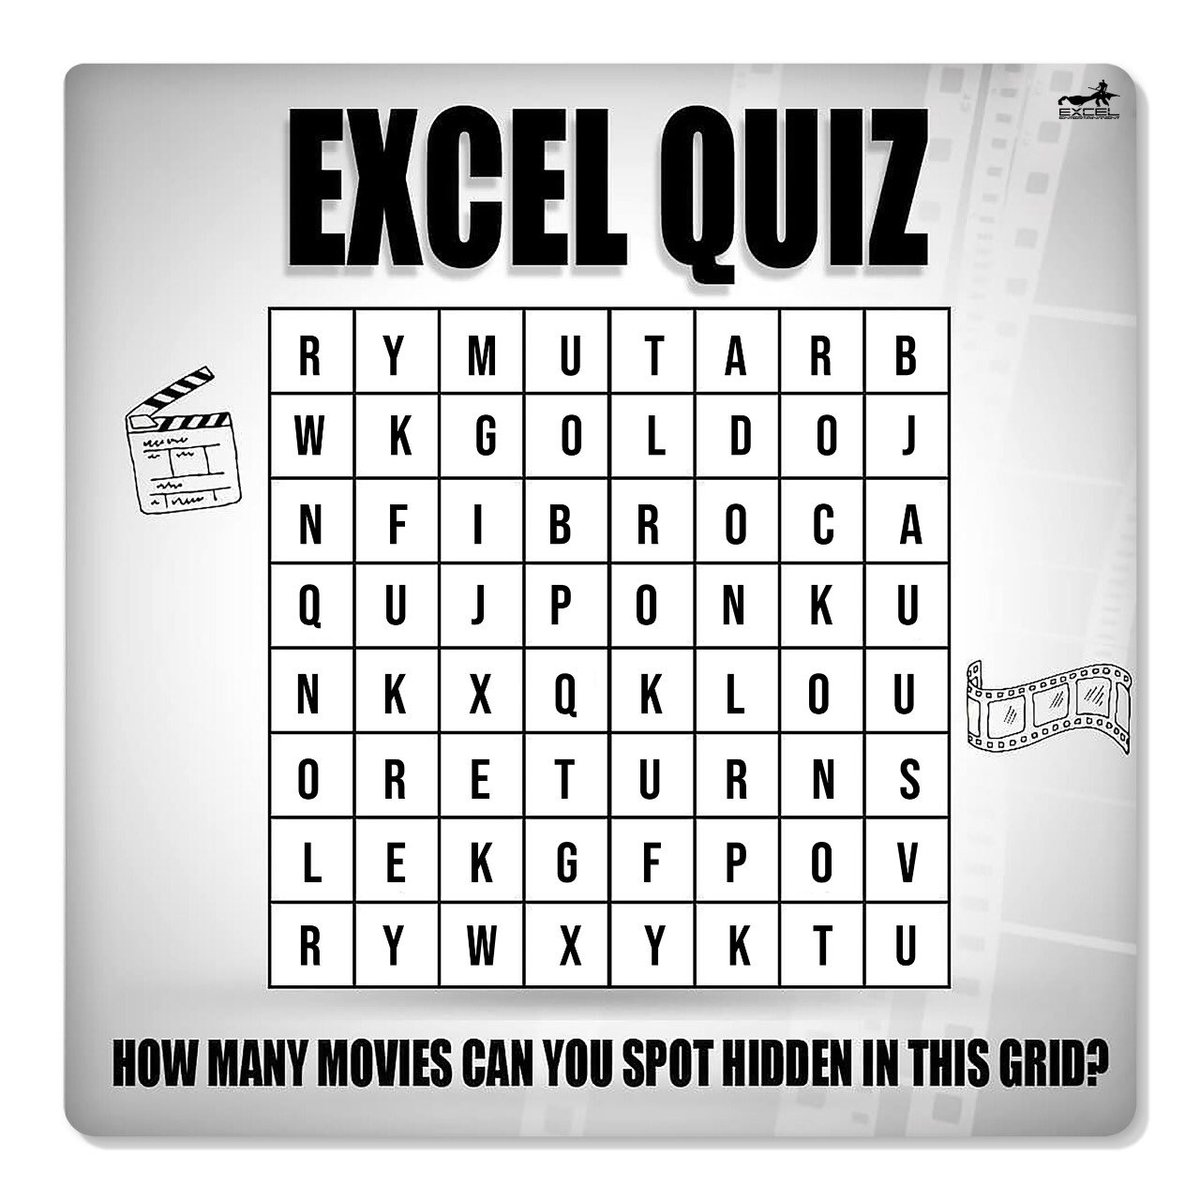 How many films can you spot? #ExcelQuiz   #WednesdayMood https://t.co/9CvgJf2r6p